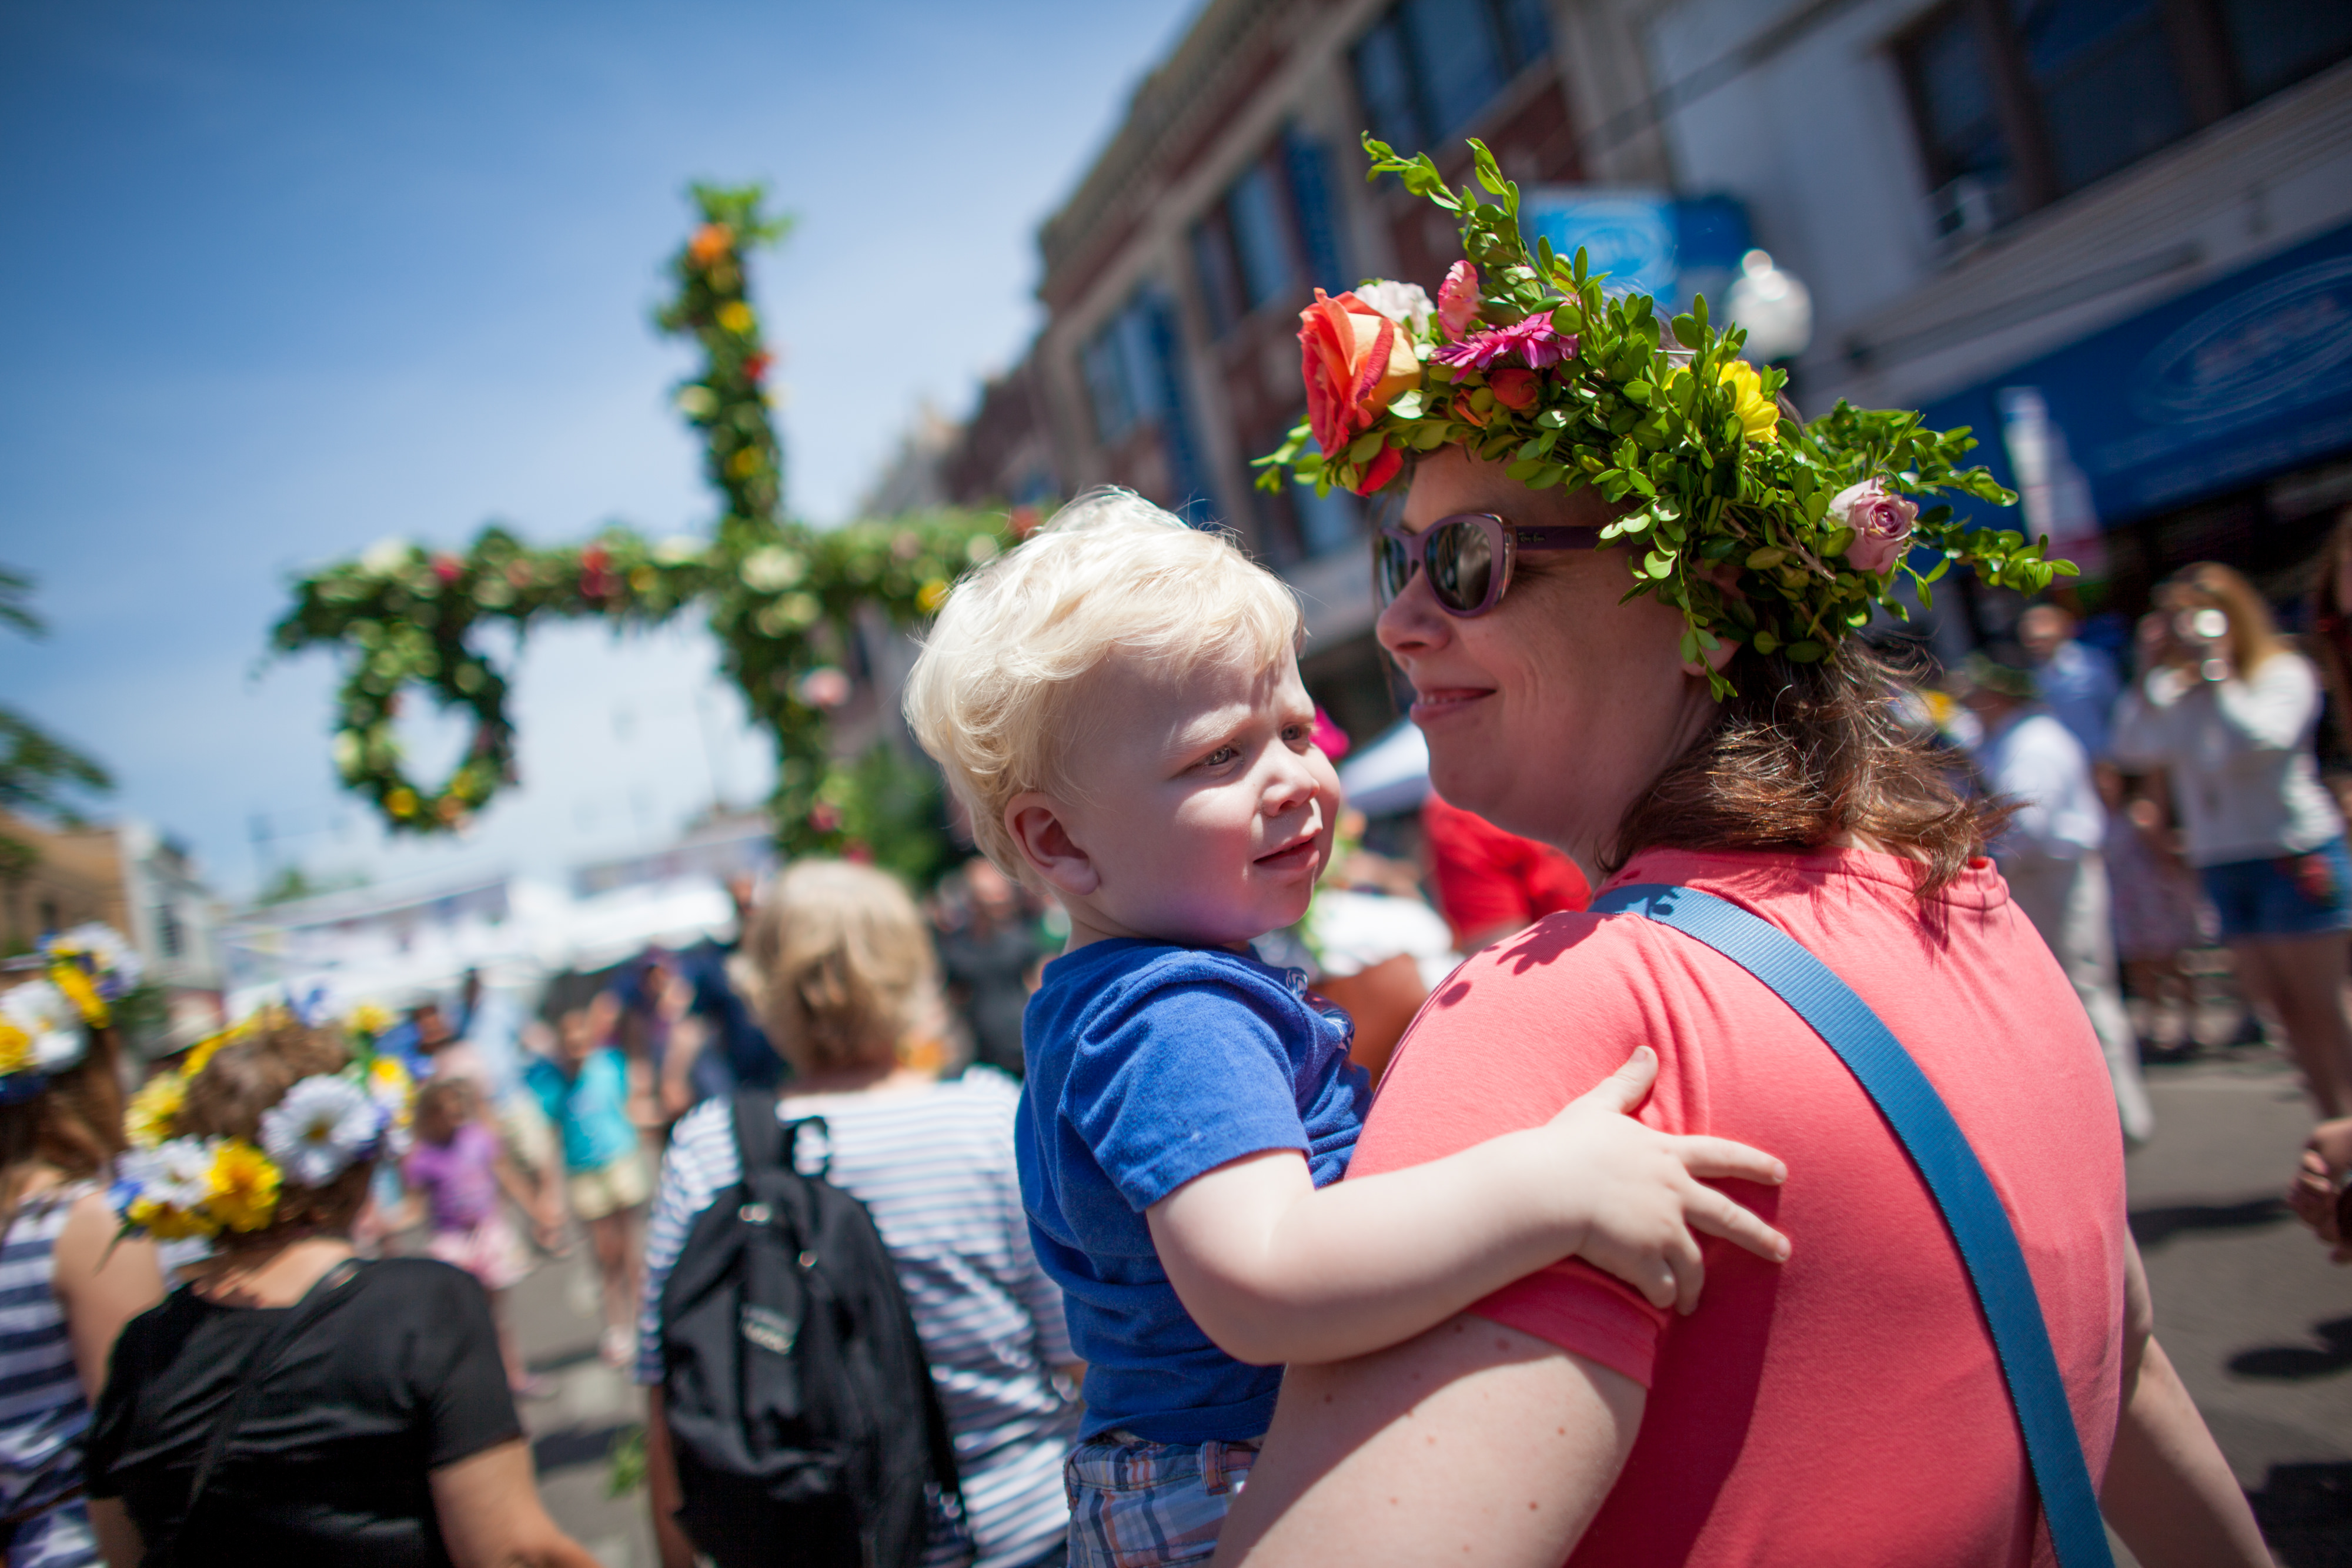 Andersonville's Midsommarfest is one of the most popular summer festivals in Chicago.   Photo Courtesy Starbelly Studios